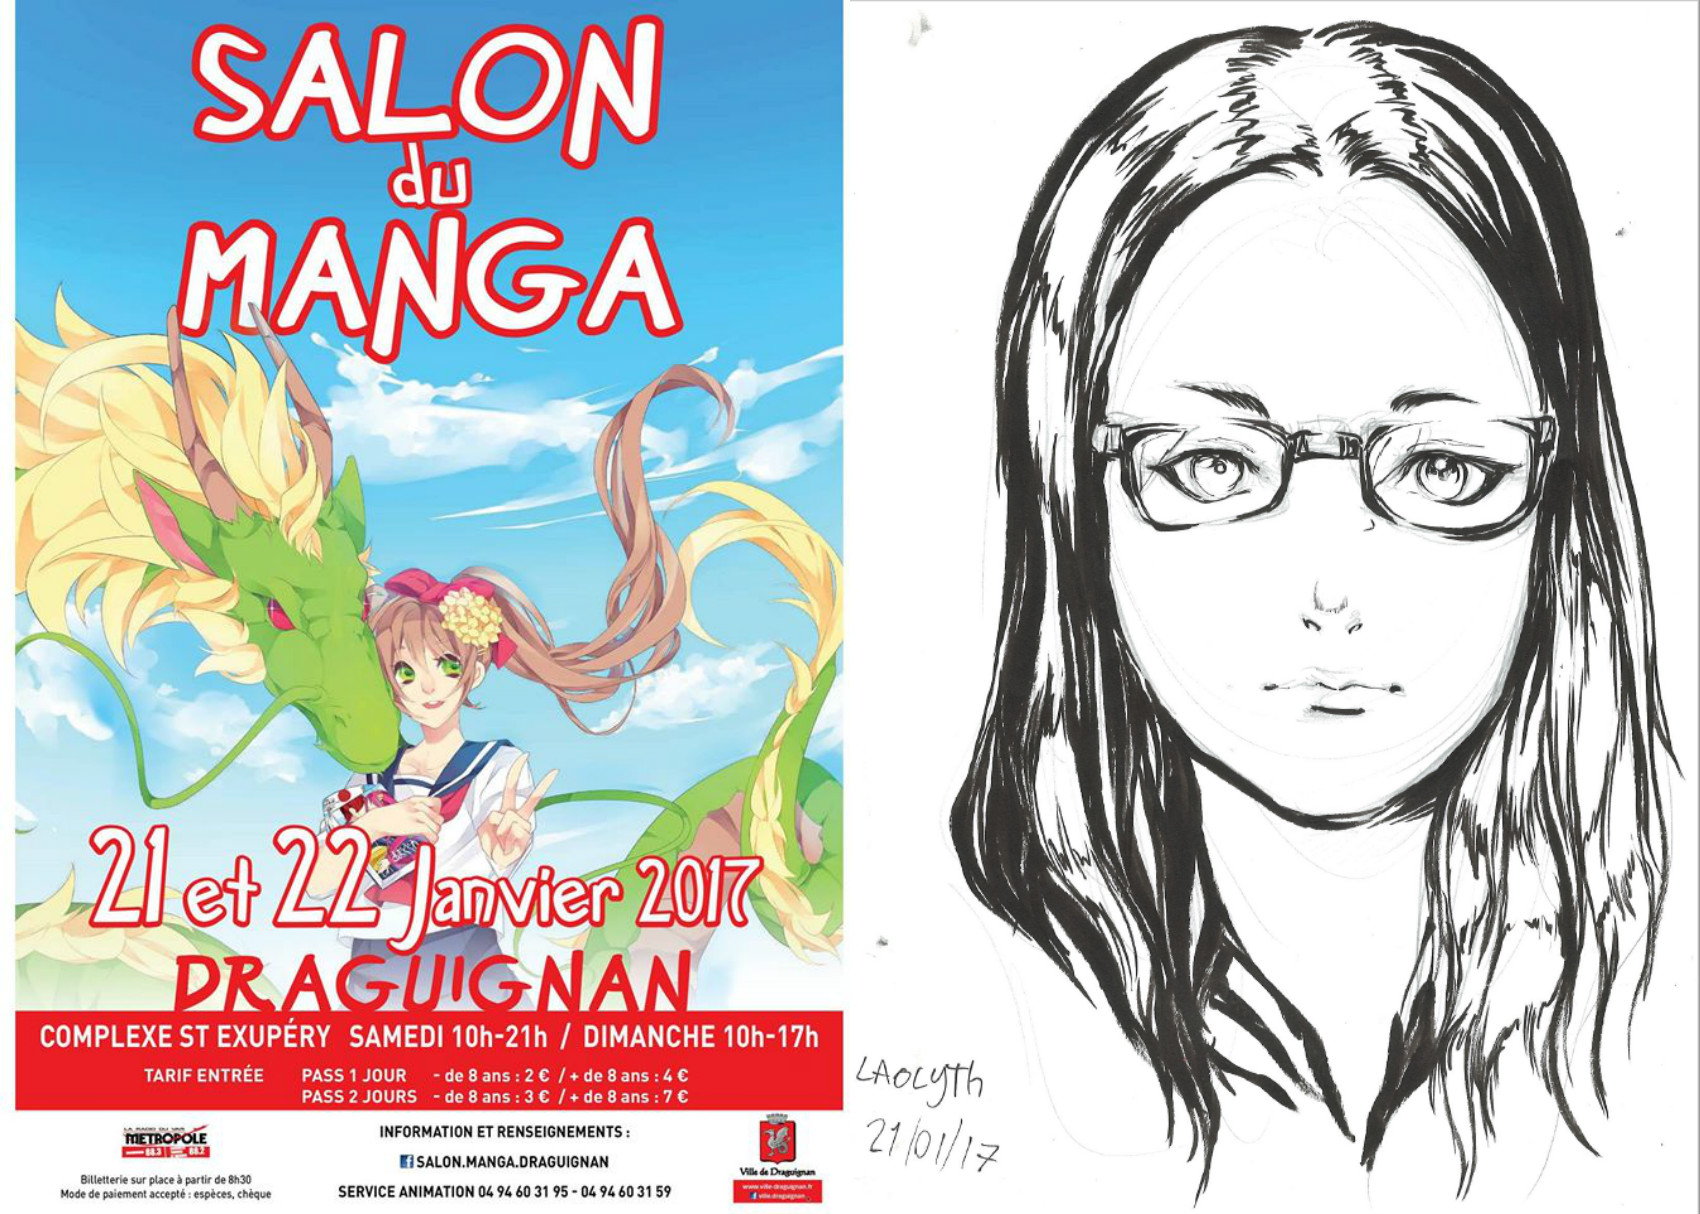 Salon manga de Draguignan, 2e édition - Laolyth ART